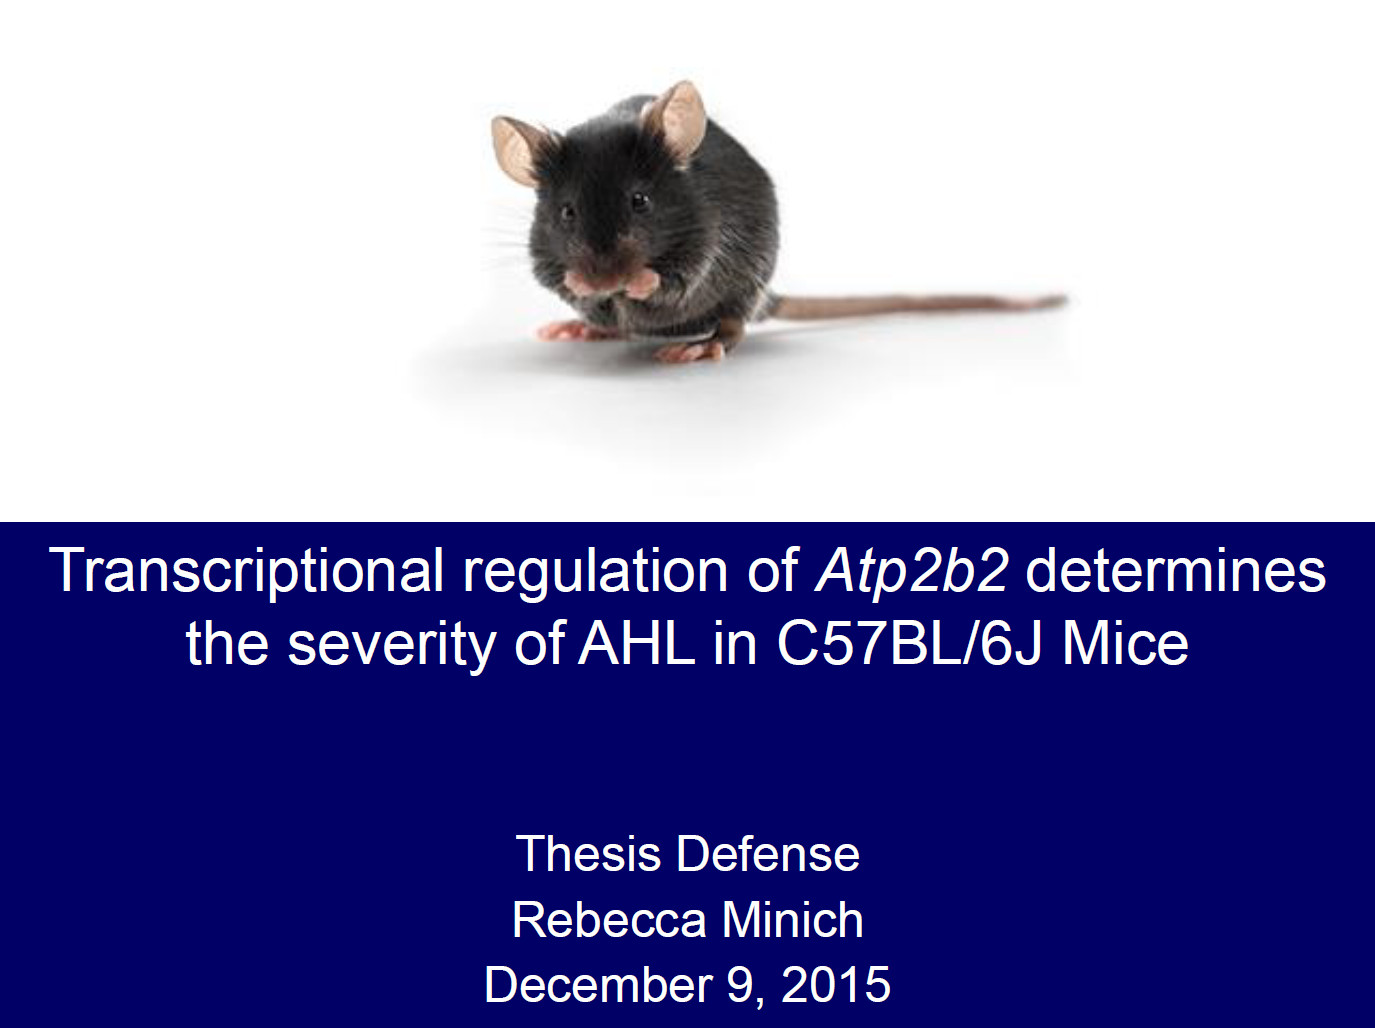 The promoter of Alpha-Atp2b2 was identified. Atp2b2 transcript is misregulated in C57BL/6J mice and long non-coding RNA is upregulated. The auditory system of normal mice is affected by  C57BL/6J Atp2b2 gene. Atp2b2 and long non-coding RNA could contribute to age related hearing loss in C57BL/6J mice.